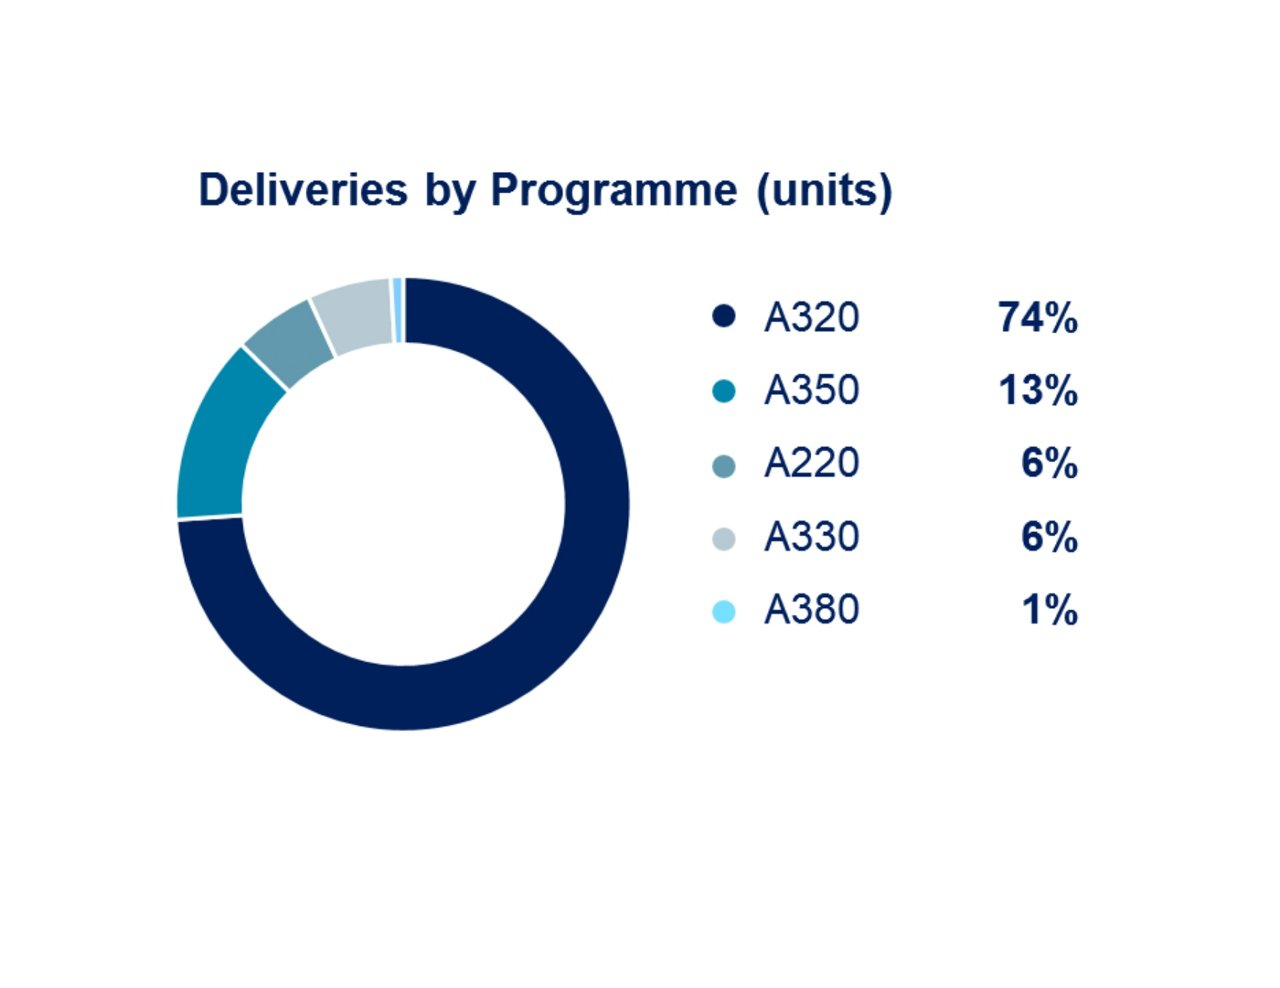 Airbus 9m 2019 Airbus Deliveries By Programme